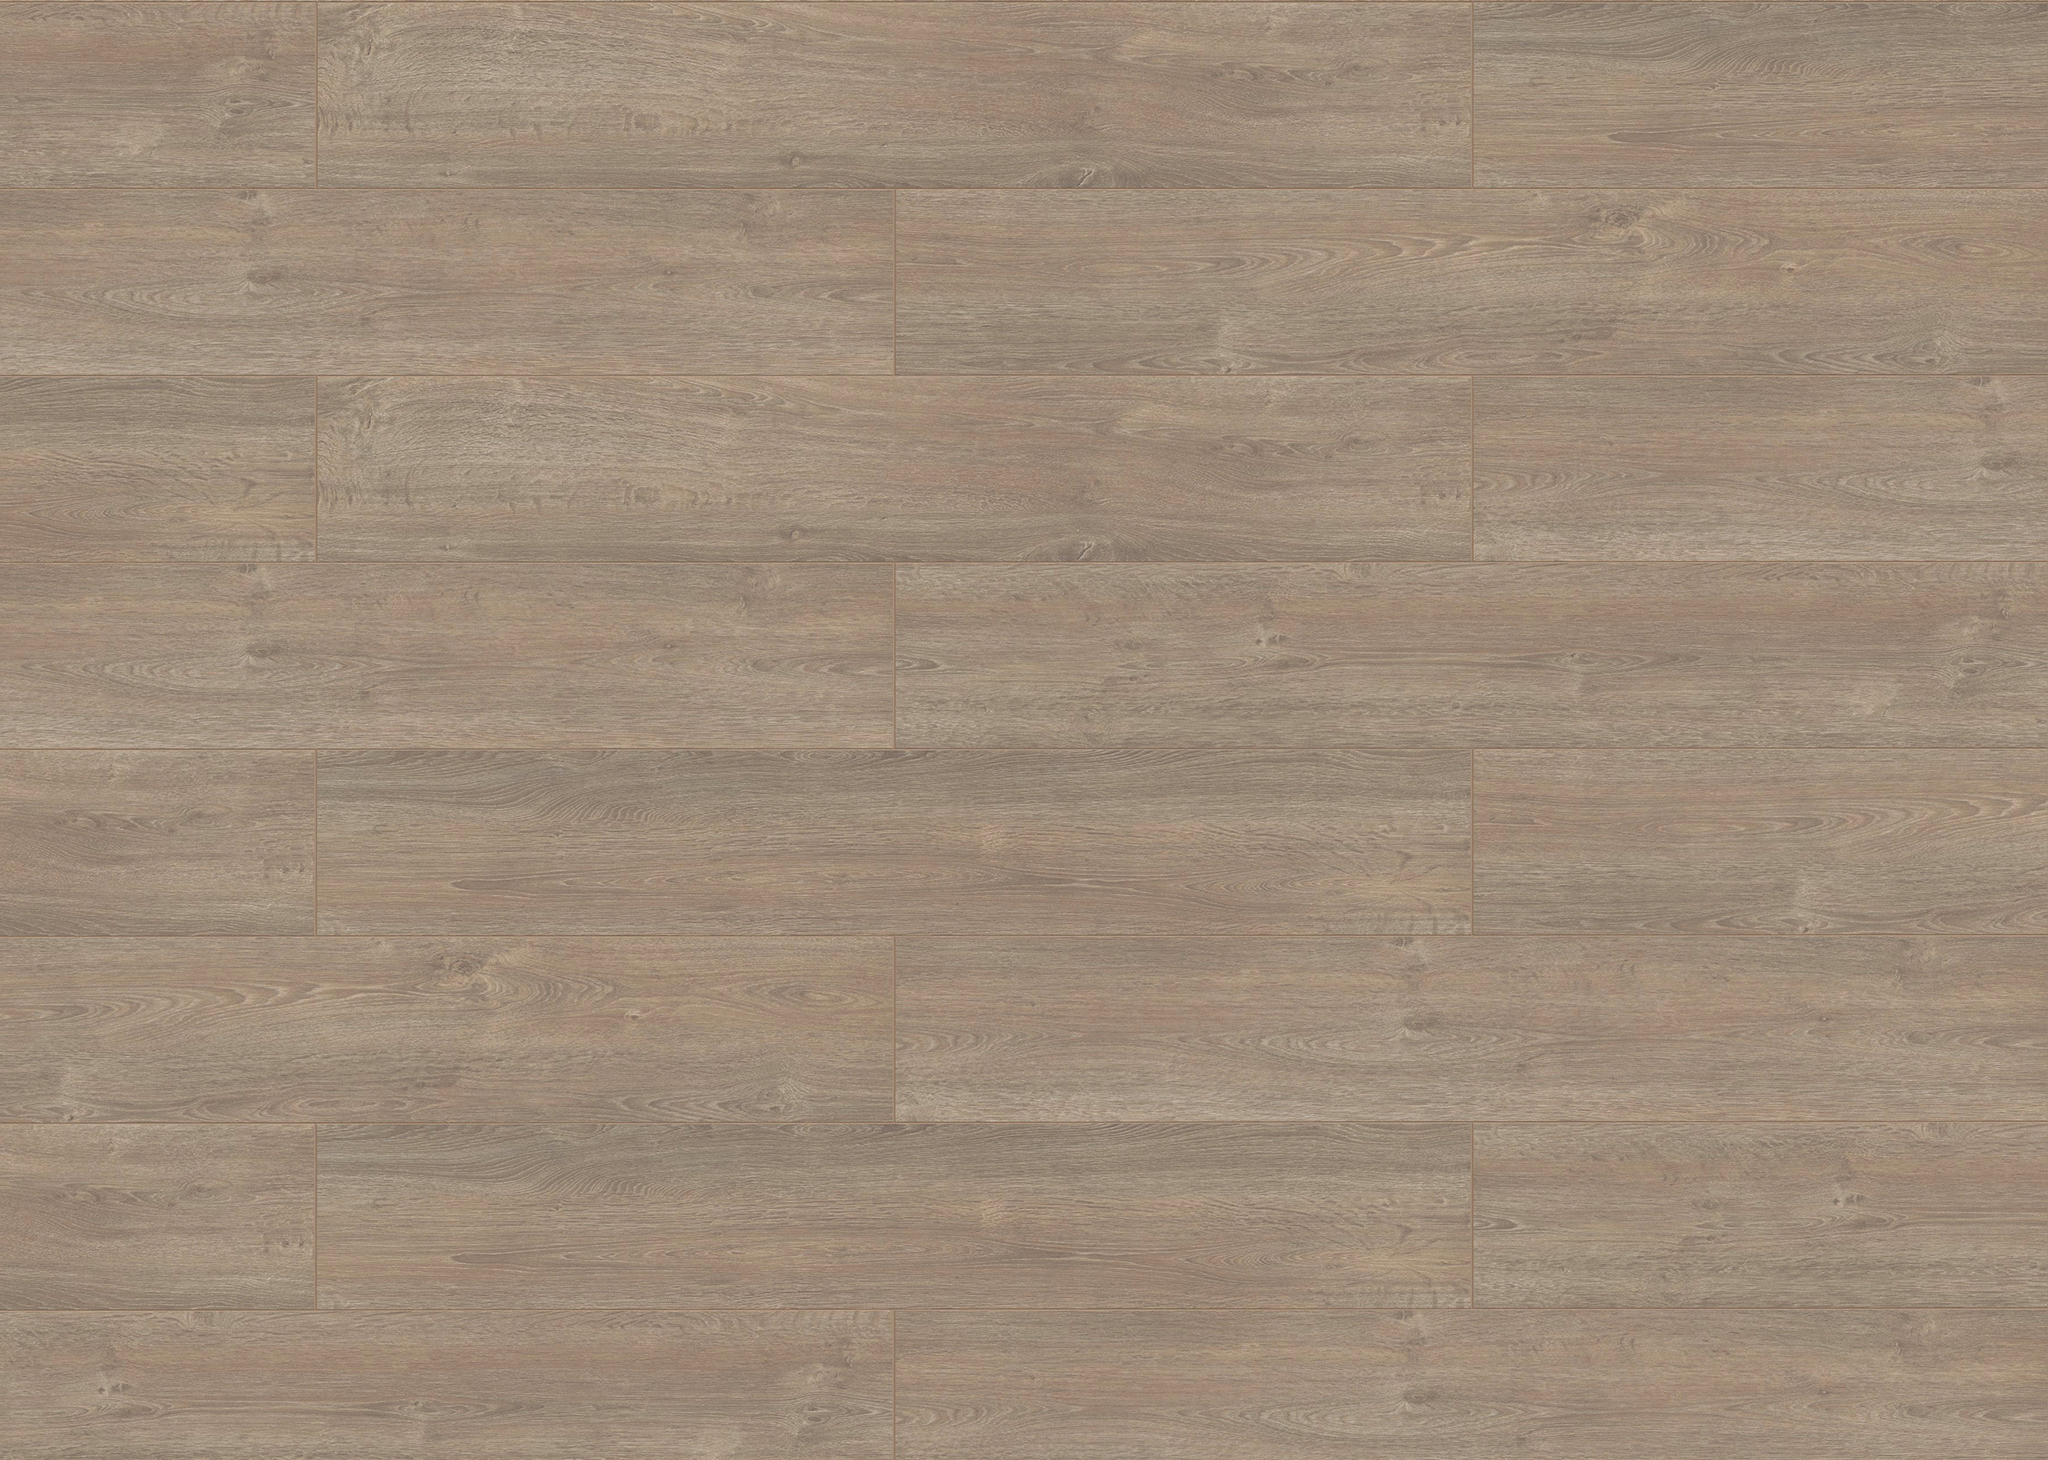 eterna Loc 8 stone oak laminate floor